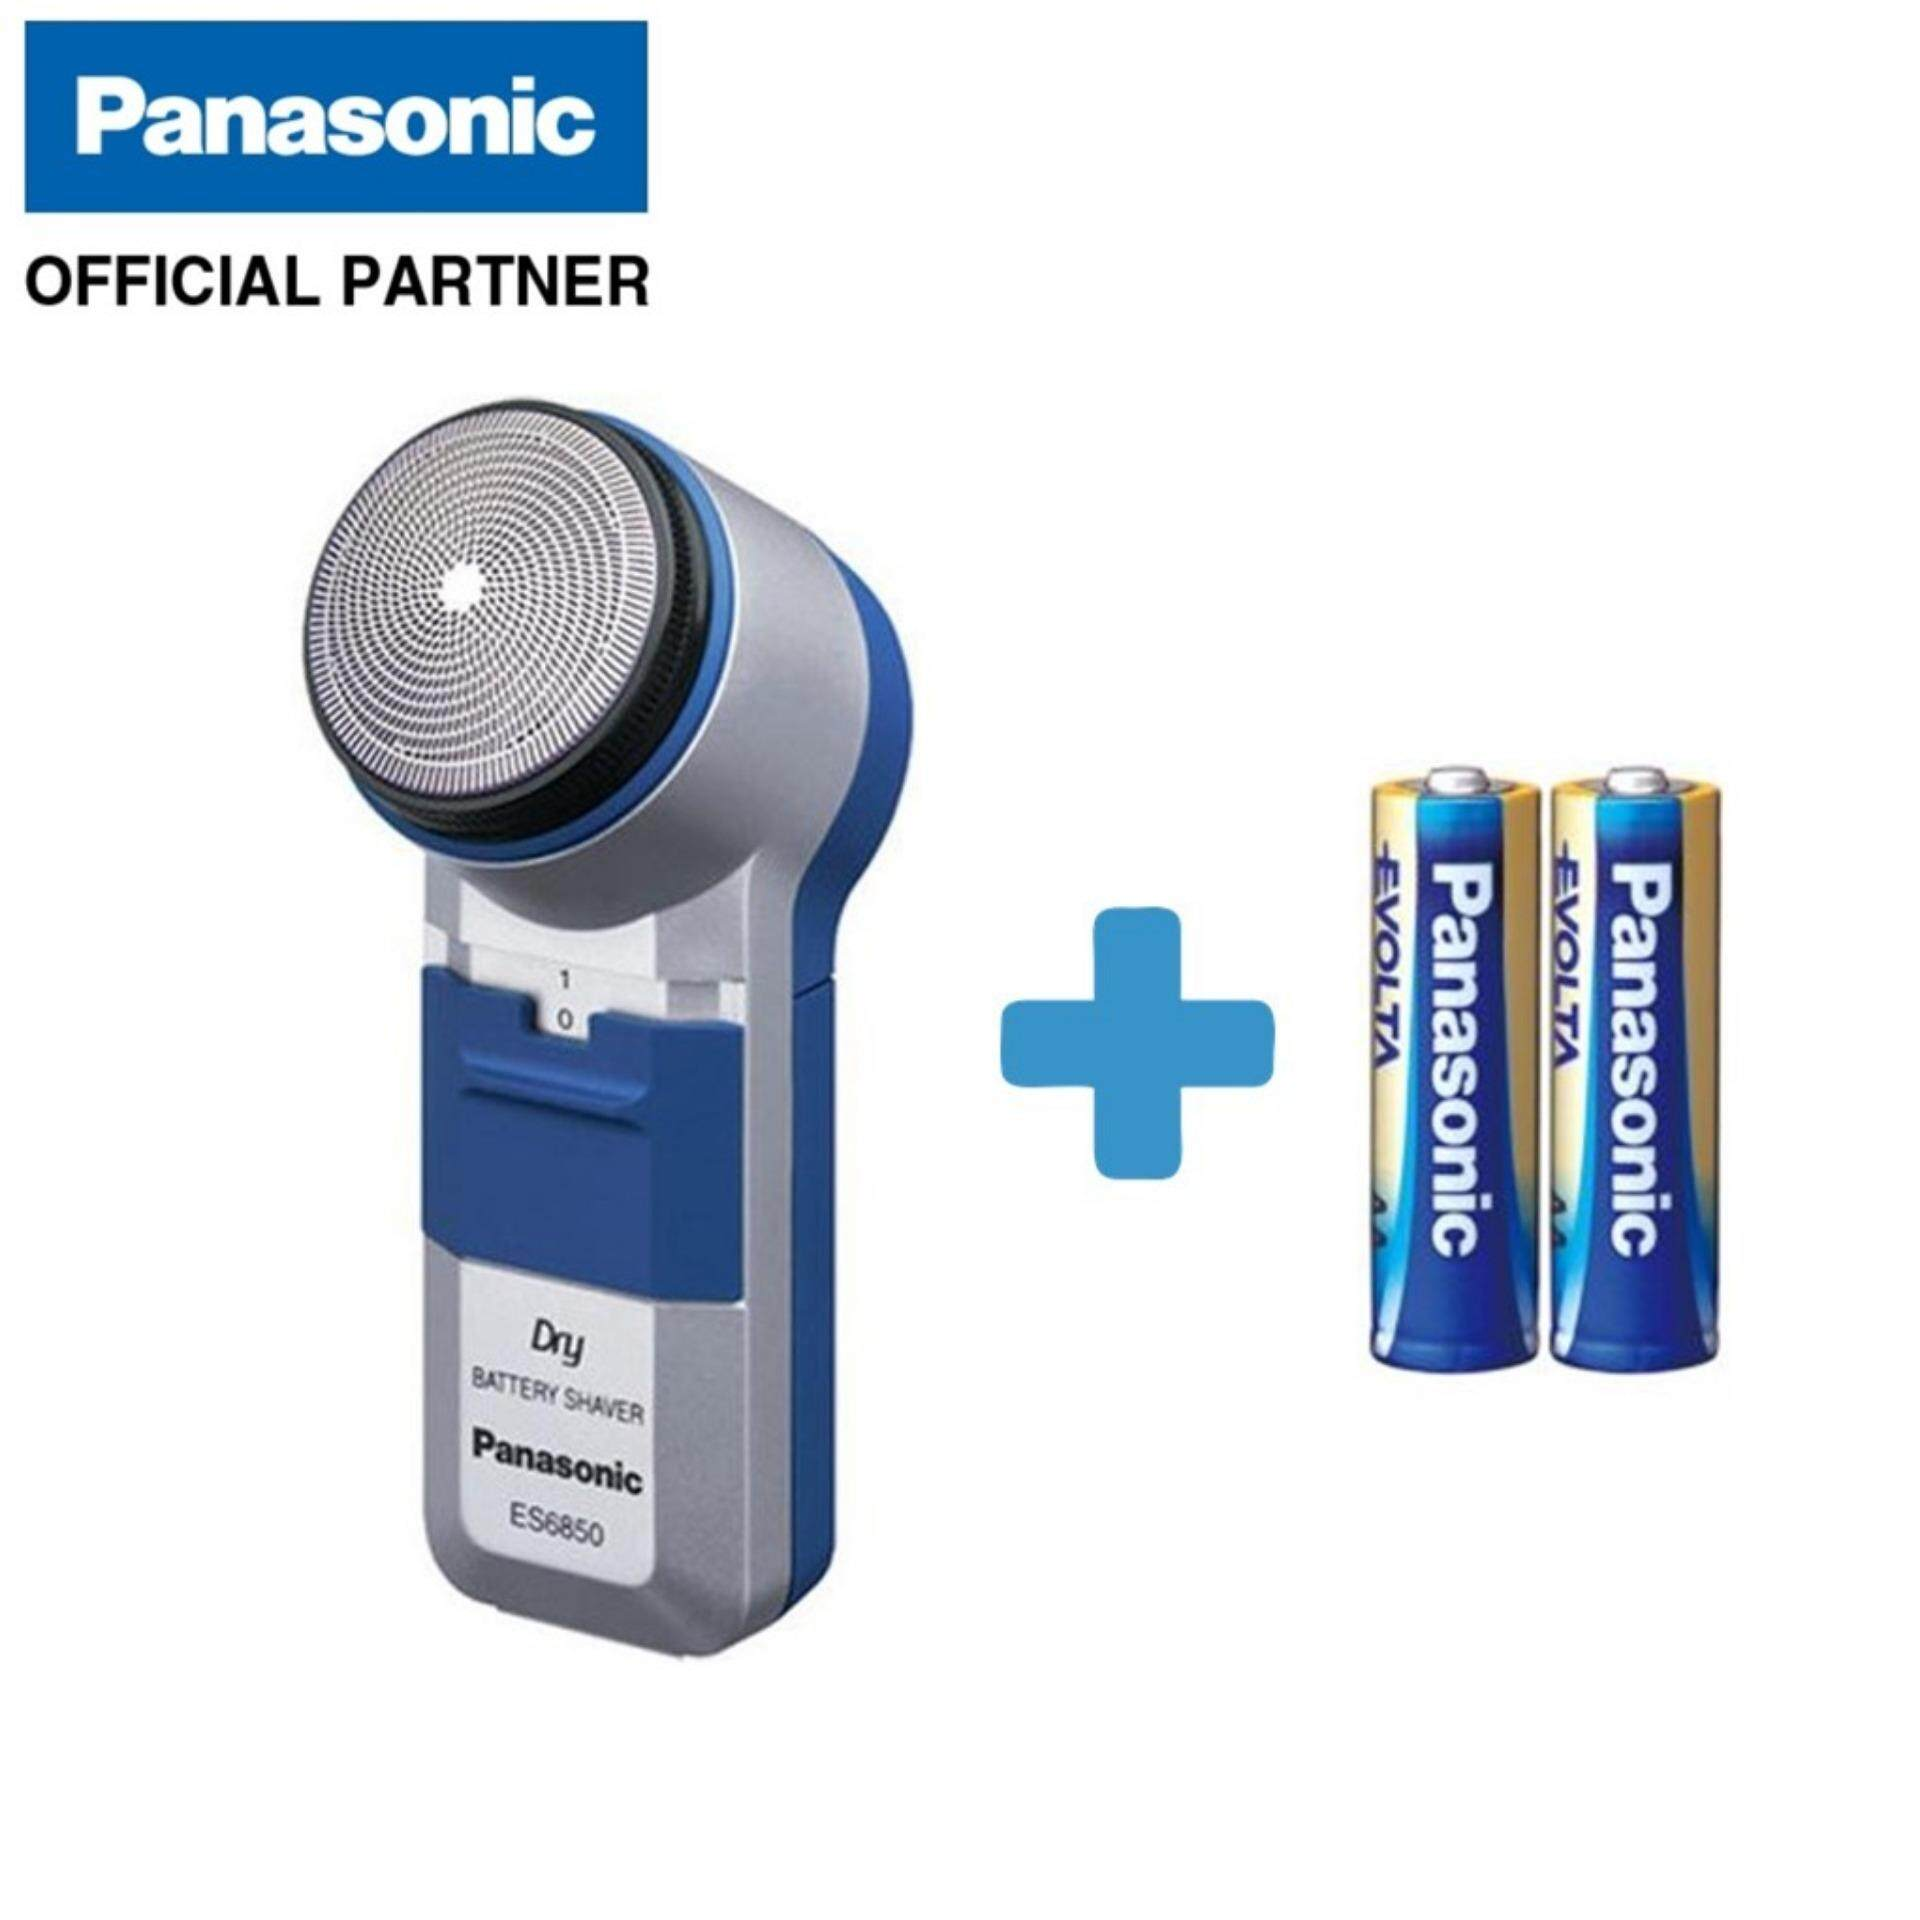 Buy Sell Cheapest 2x Kiss Beauty Best Quality Product Deals Bigen Speedy 2 X 30gr Panasonic Battery Operated Shaver Es 6850 With Free Aa Evolta Worth Rm9